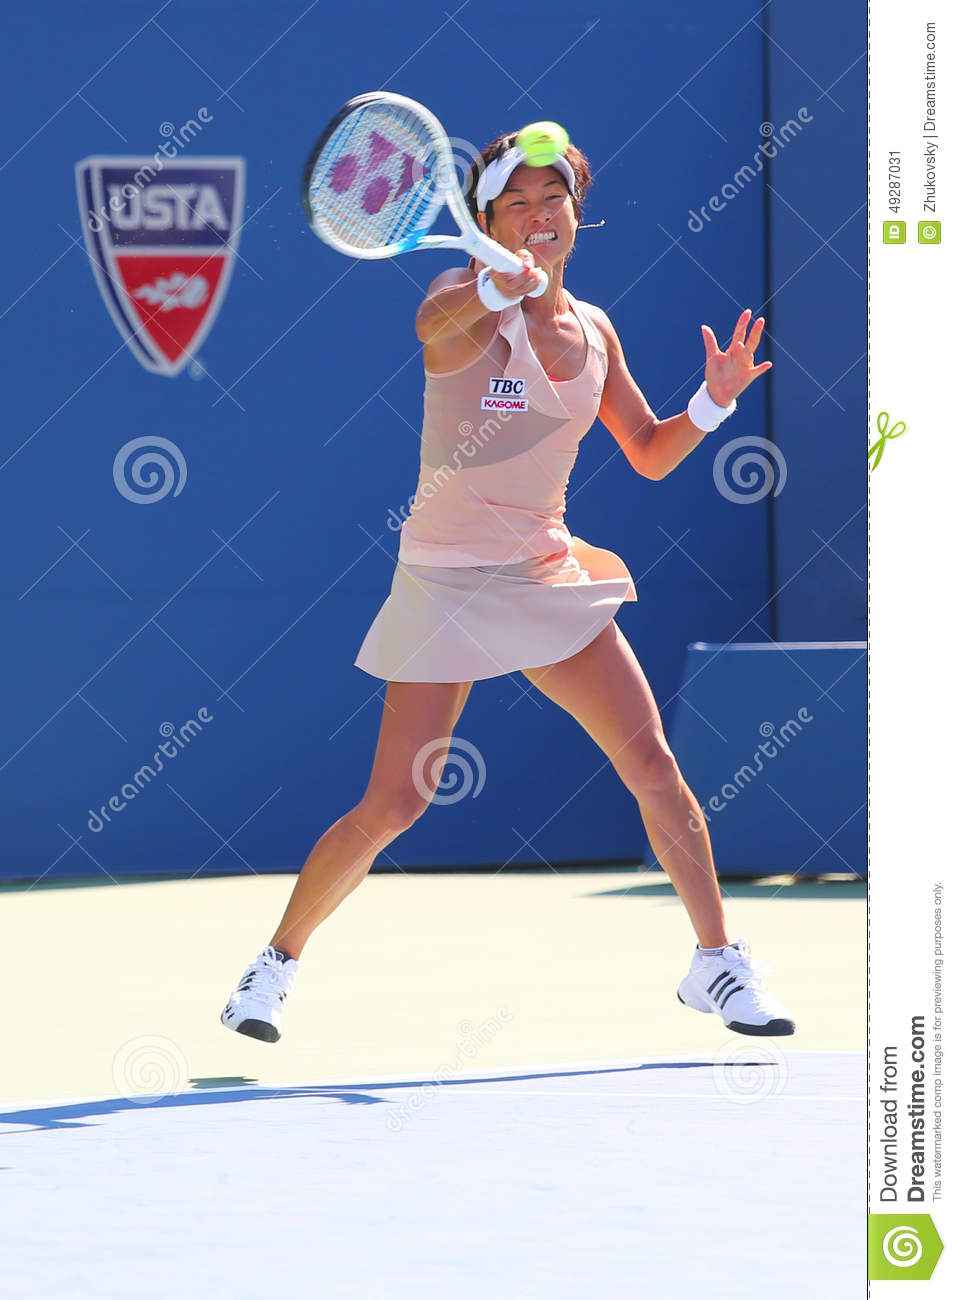 Professional tennis player Kimiko Date-Krumm during first round match at US Open 2014